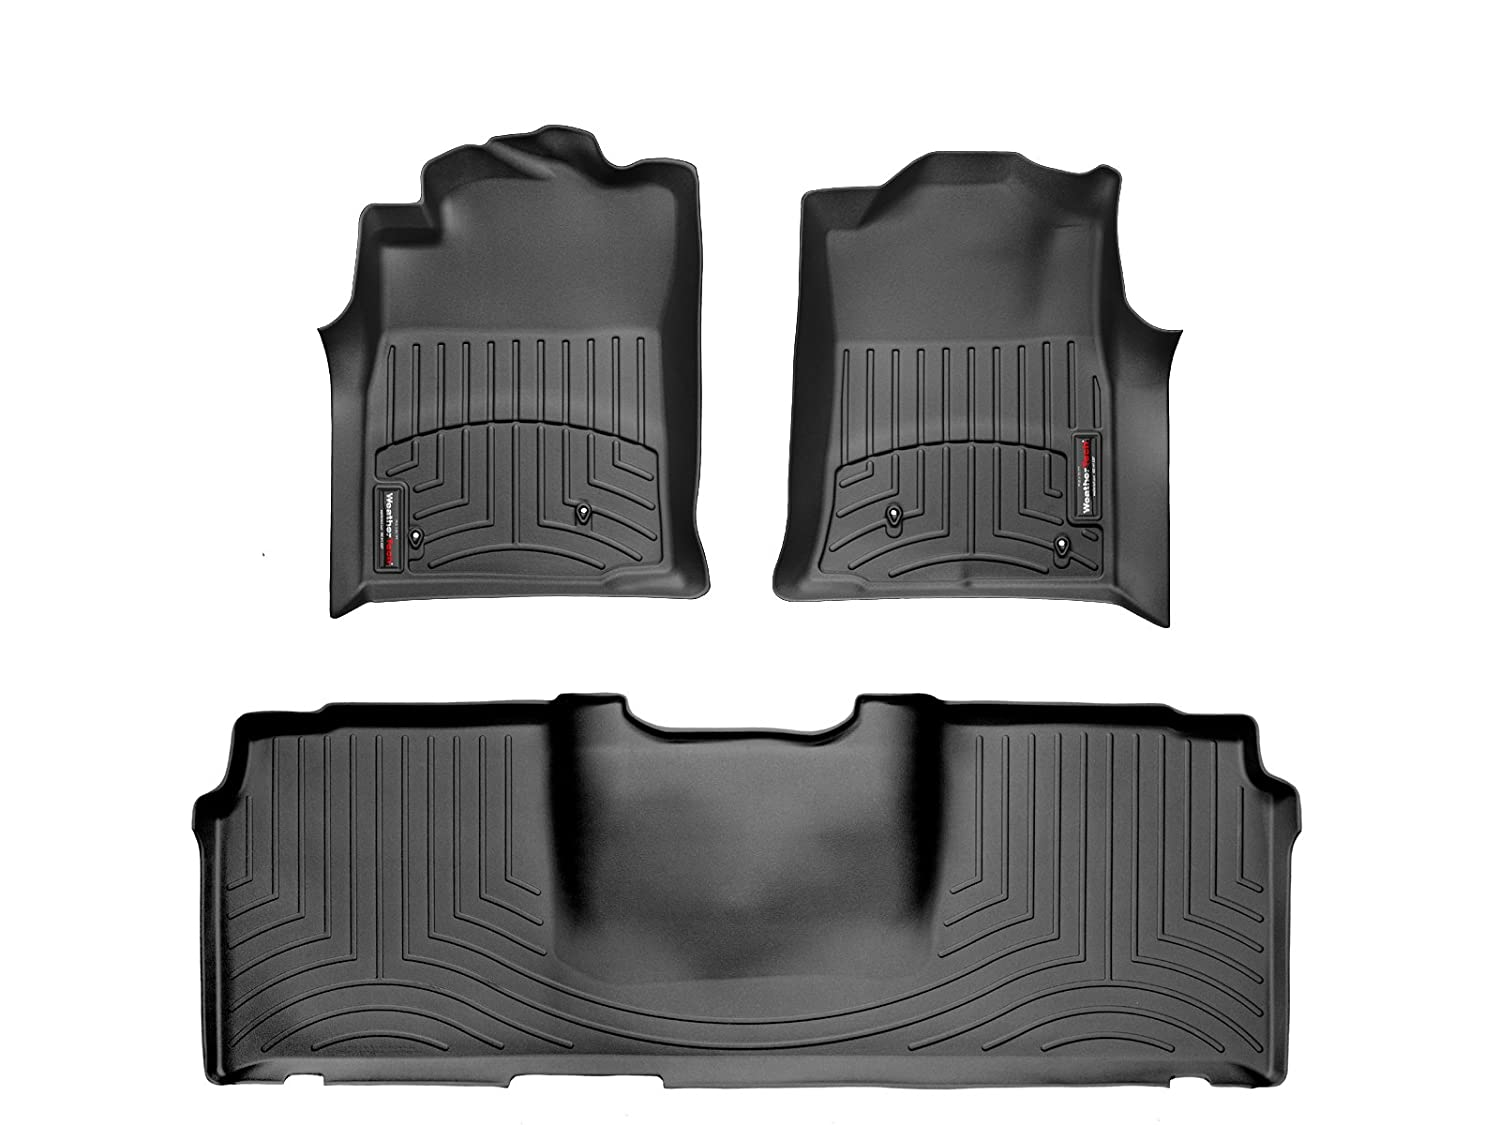 Weathertech mats toyota tacoma - Amazon Com Toyota Tacoma Double Cab Weathertech Floor Liners Full Set Includes 1st And 2nd Row All Wheel Drive Models Only Black Automotive